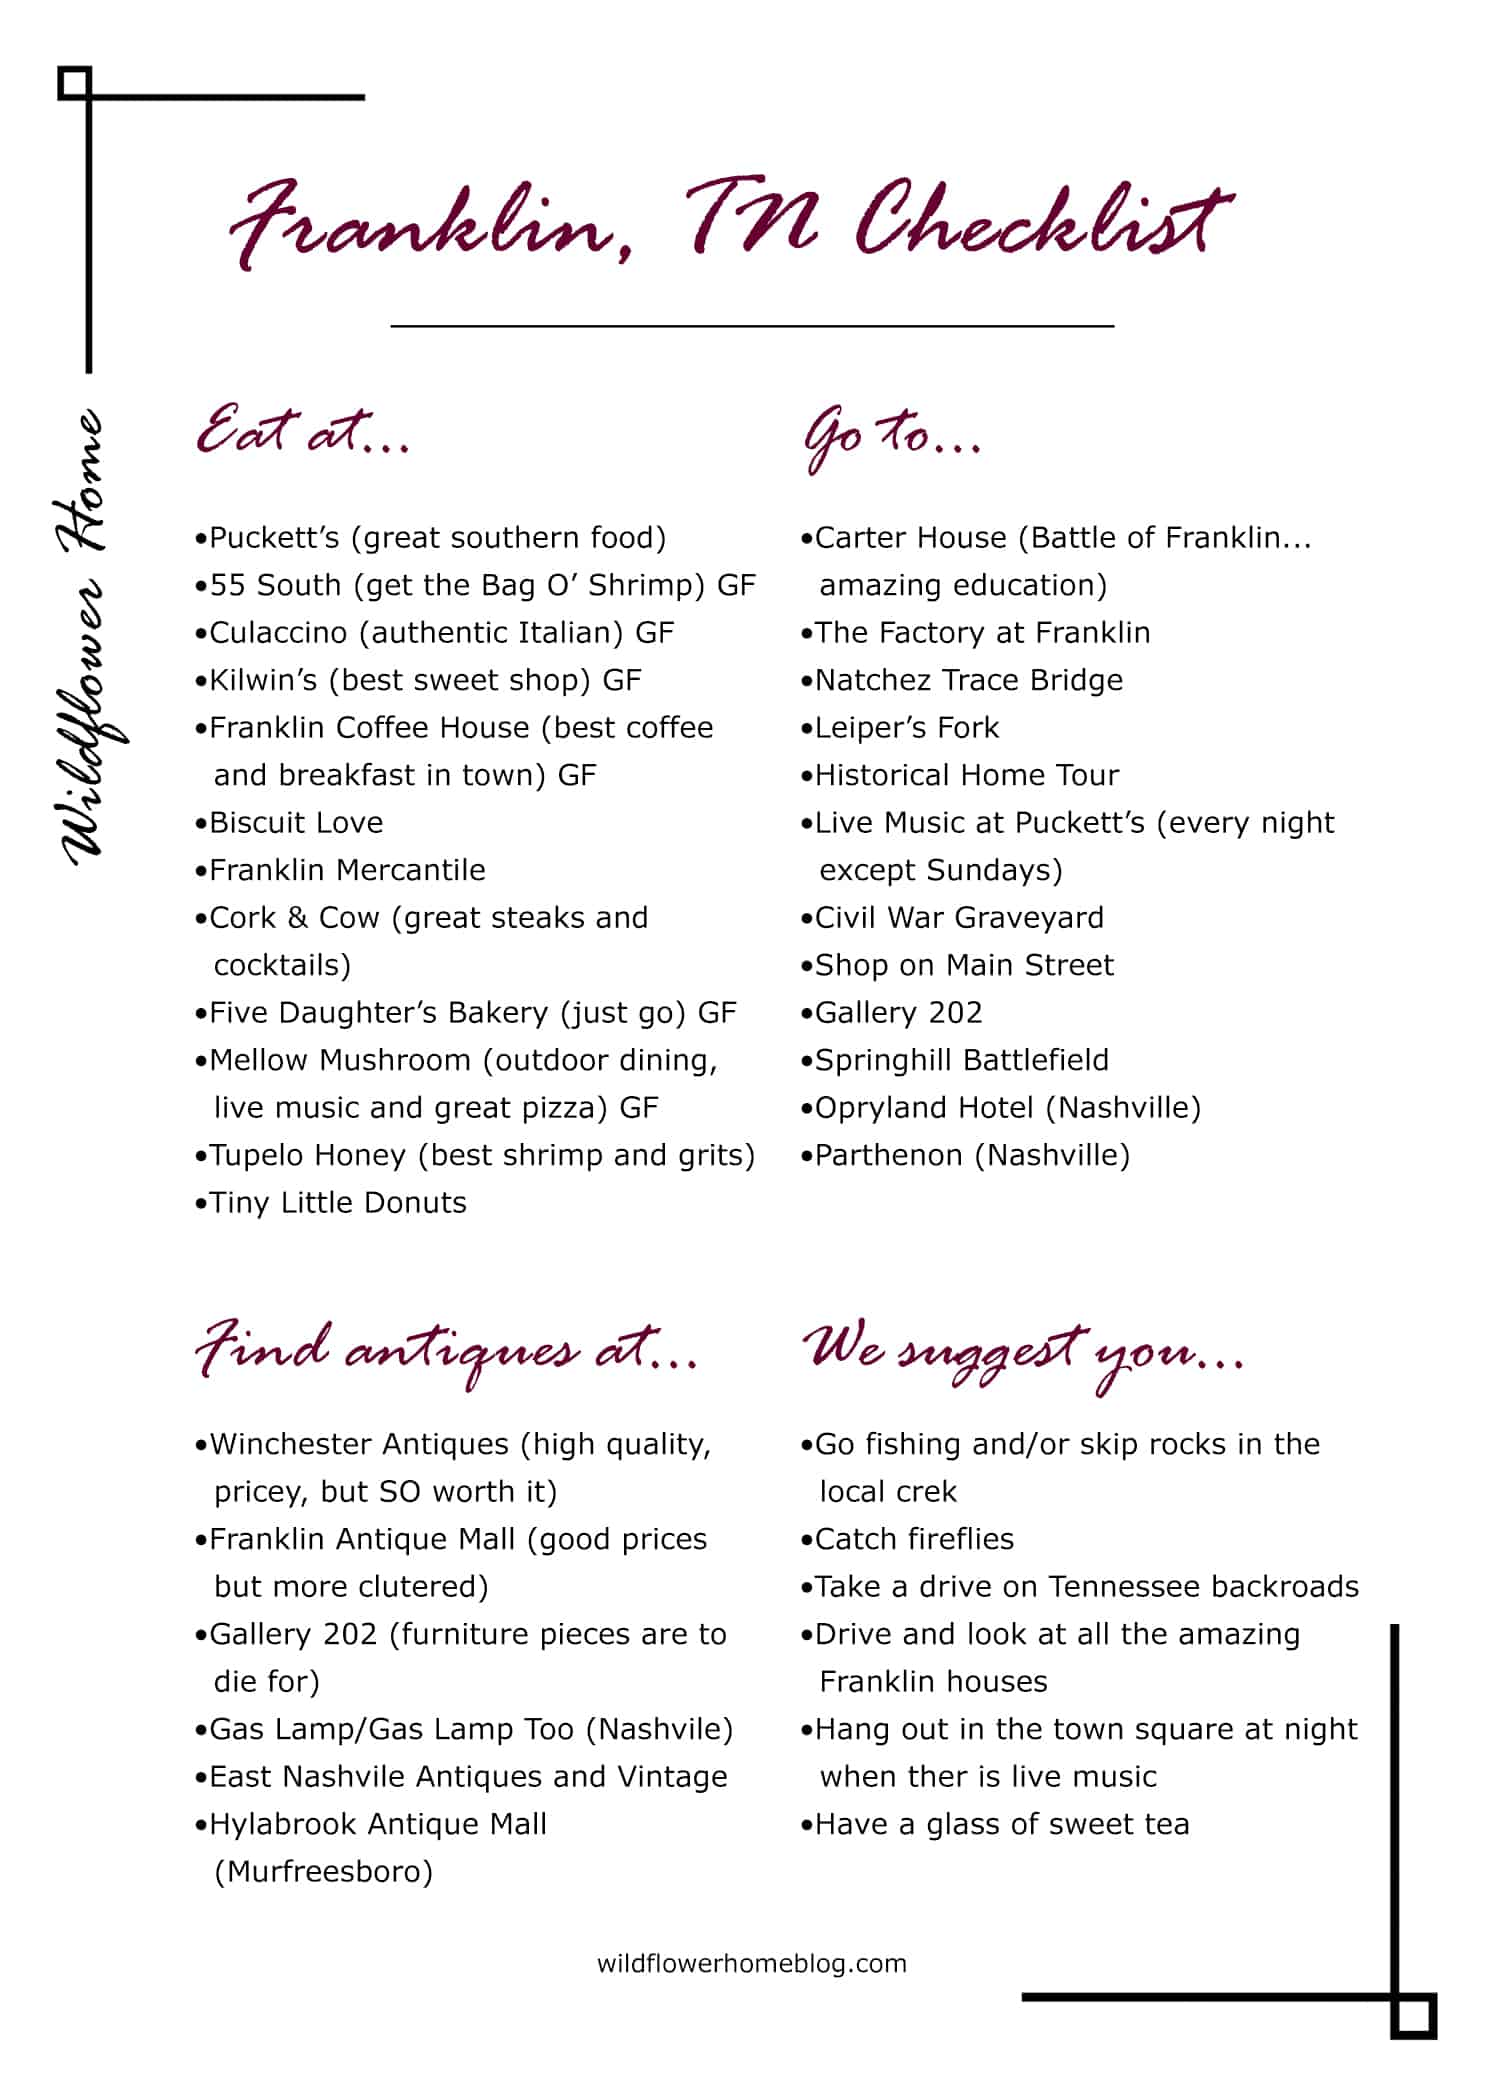 Franklin, TN what to see, do, and eat printable